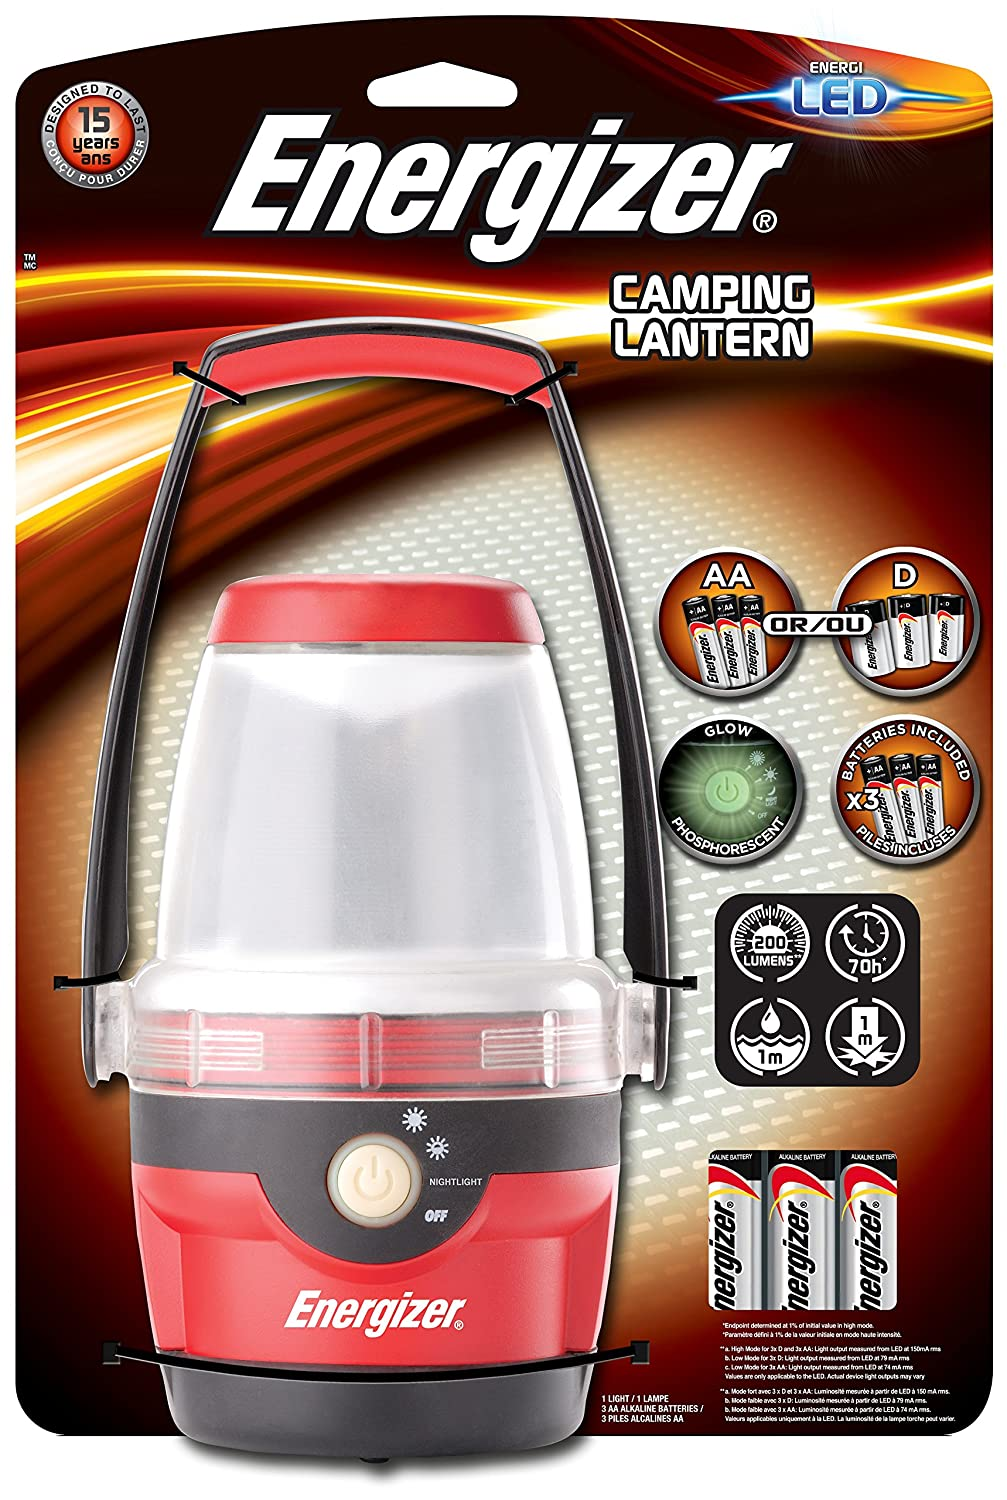 Energizer Camping Light B005JD5JKE